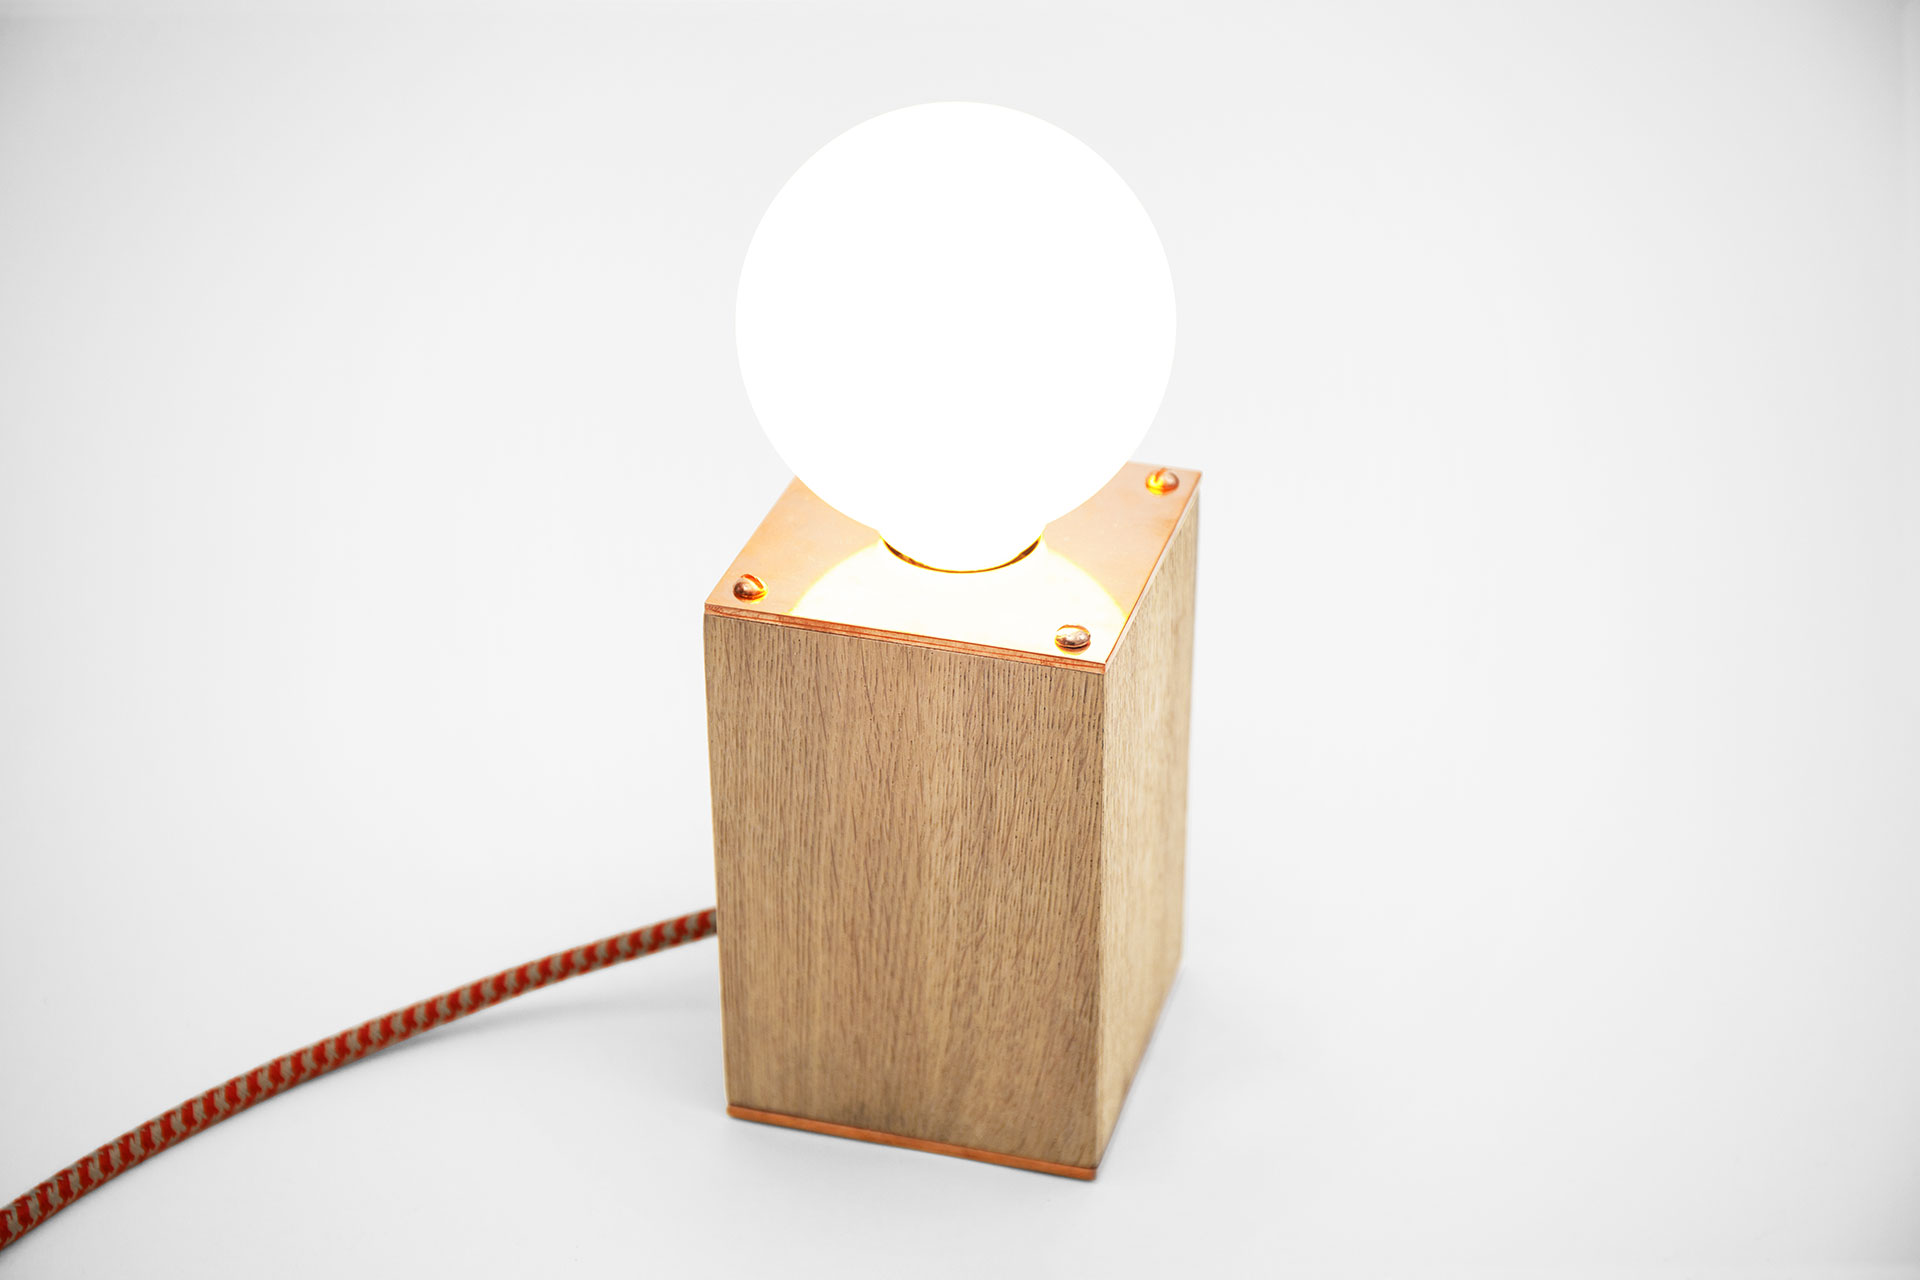 Wooden table lamp with trendy copper details and creative touch dimmer in cozy chic bedroom